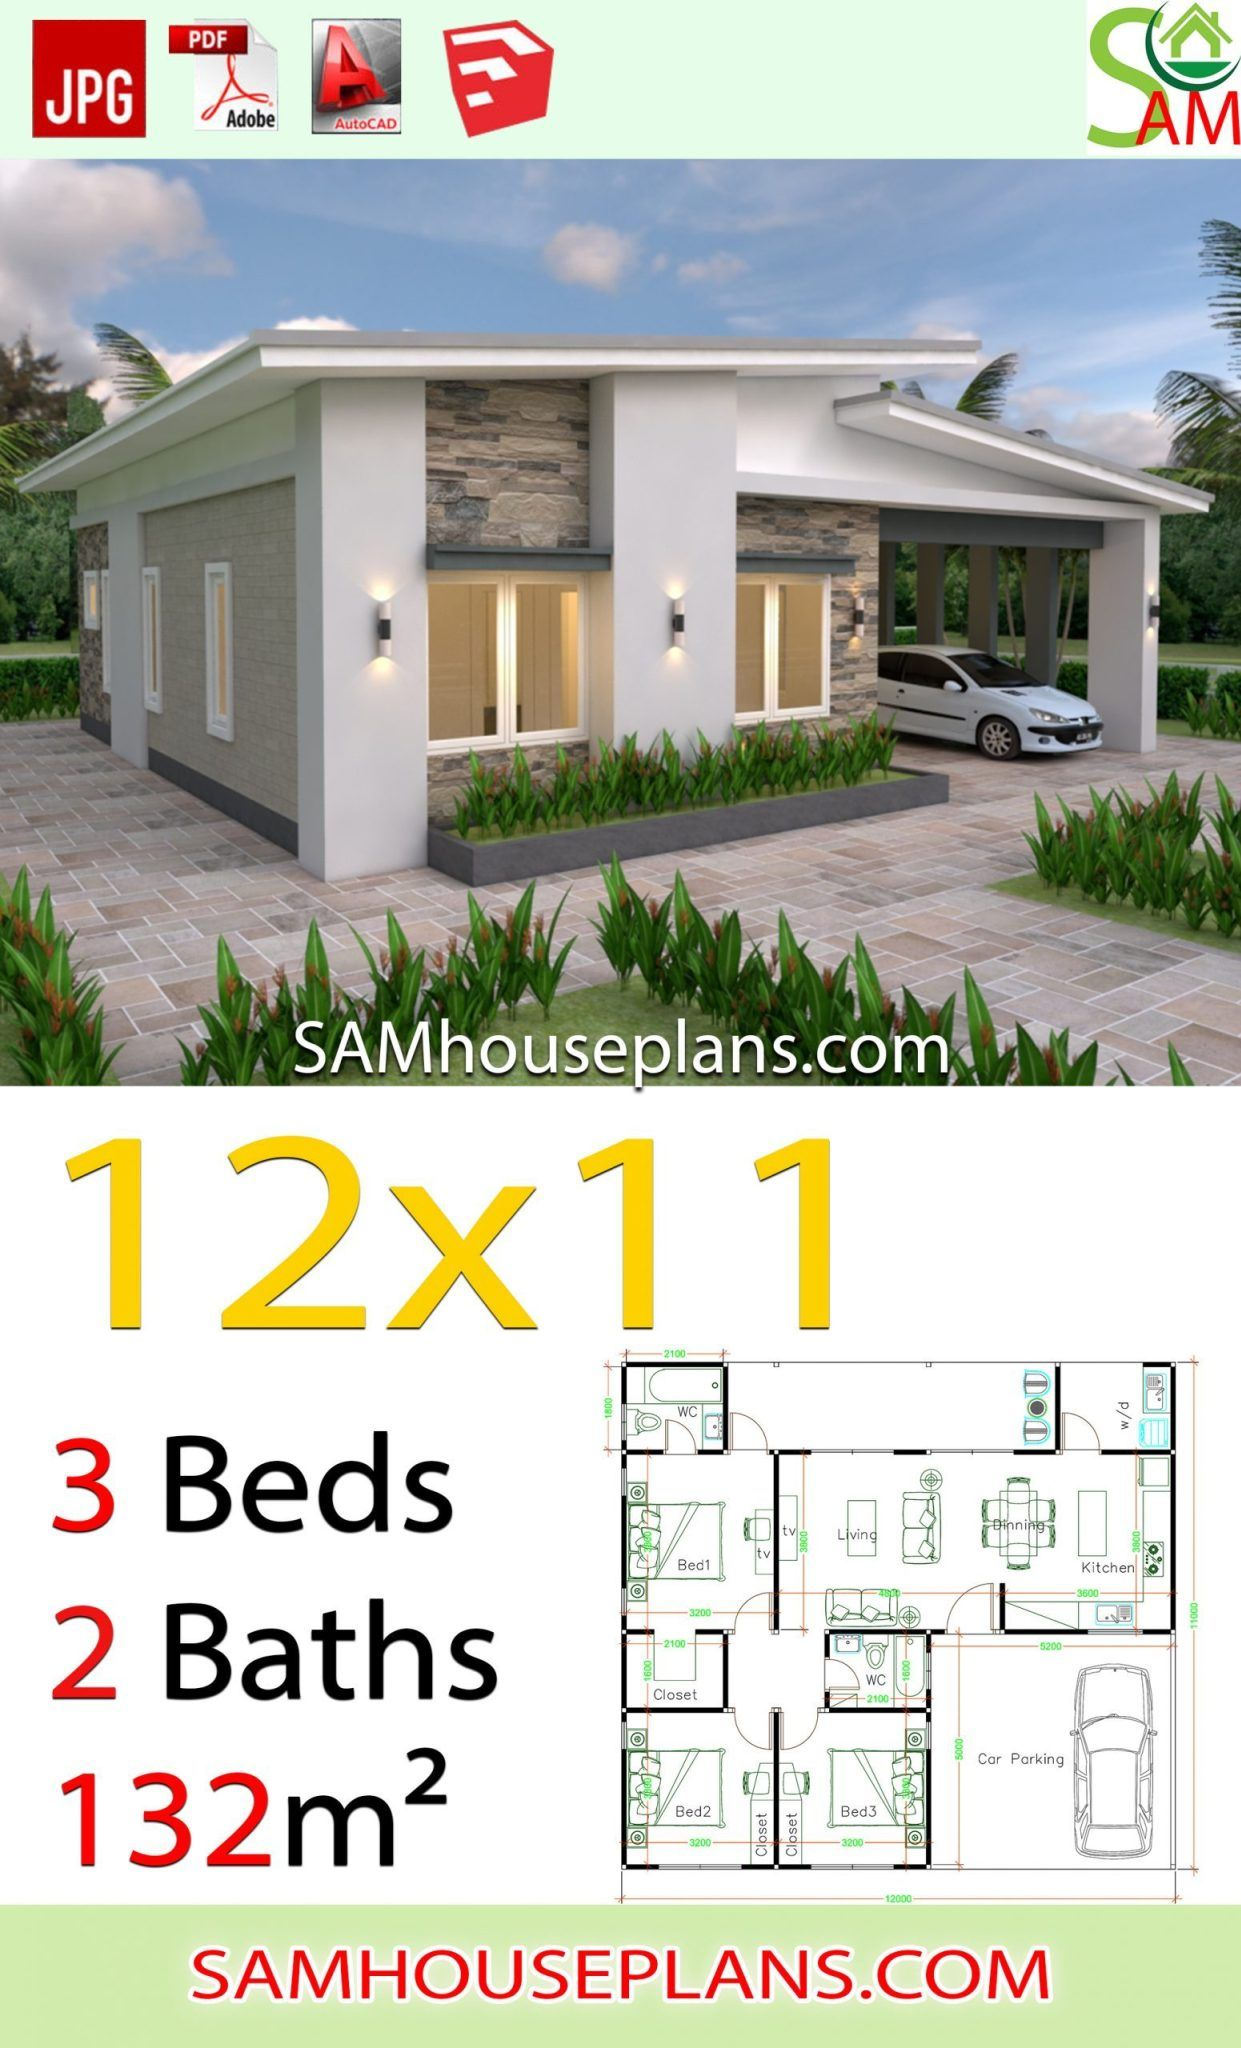 House Plans 12x11 With 3 Bedrooms Shed Roof Sam House Plans House Construction Plan House Plan Gallery Small House Design Plans